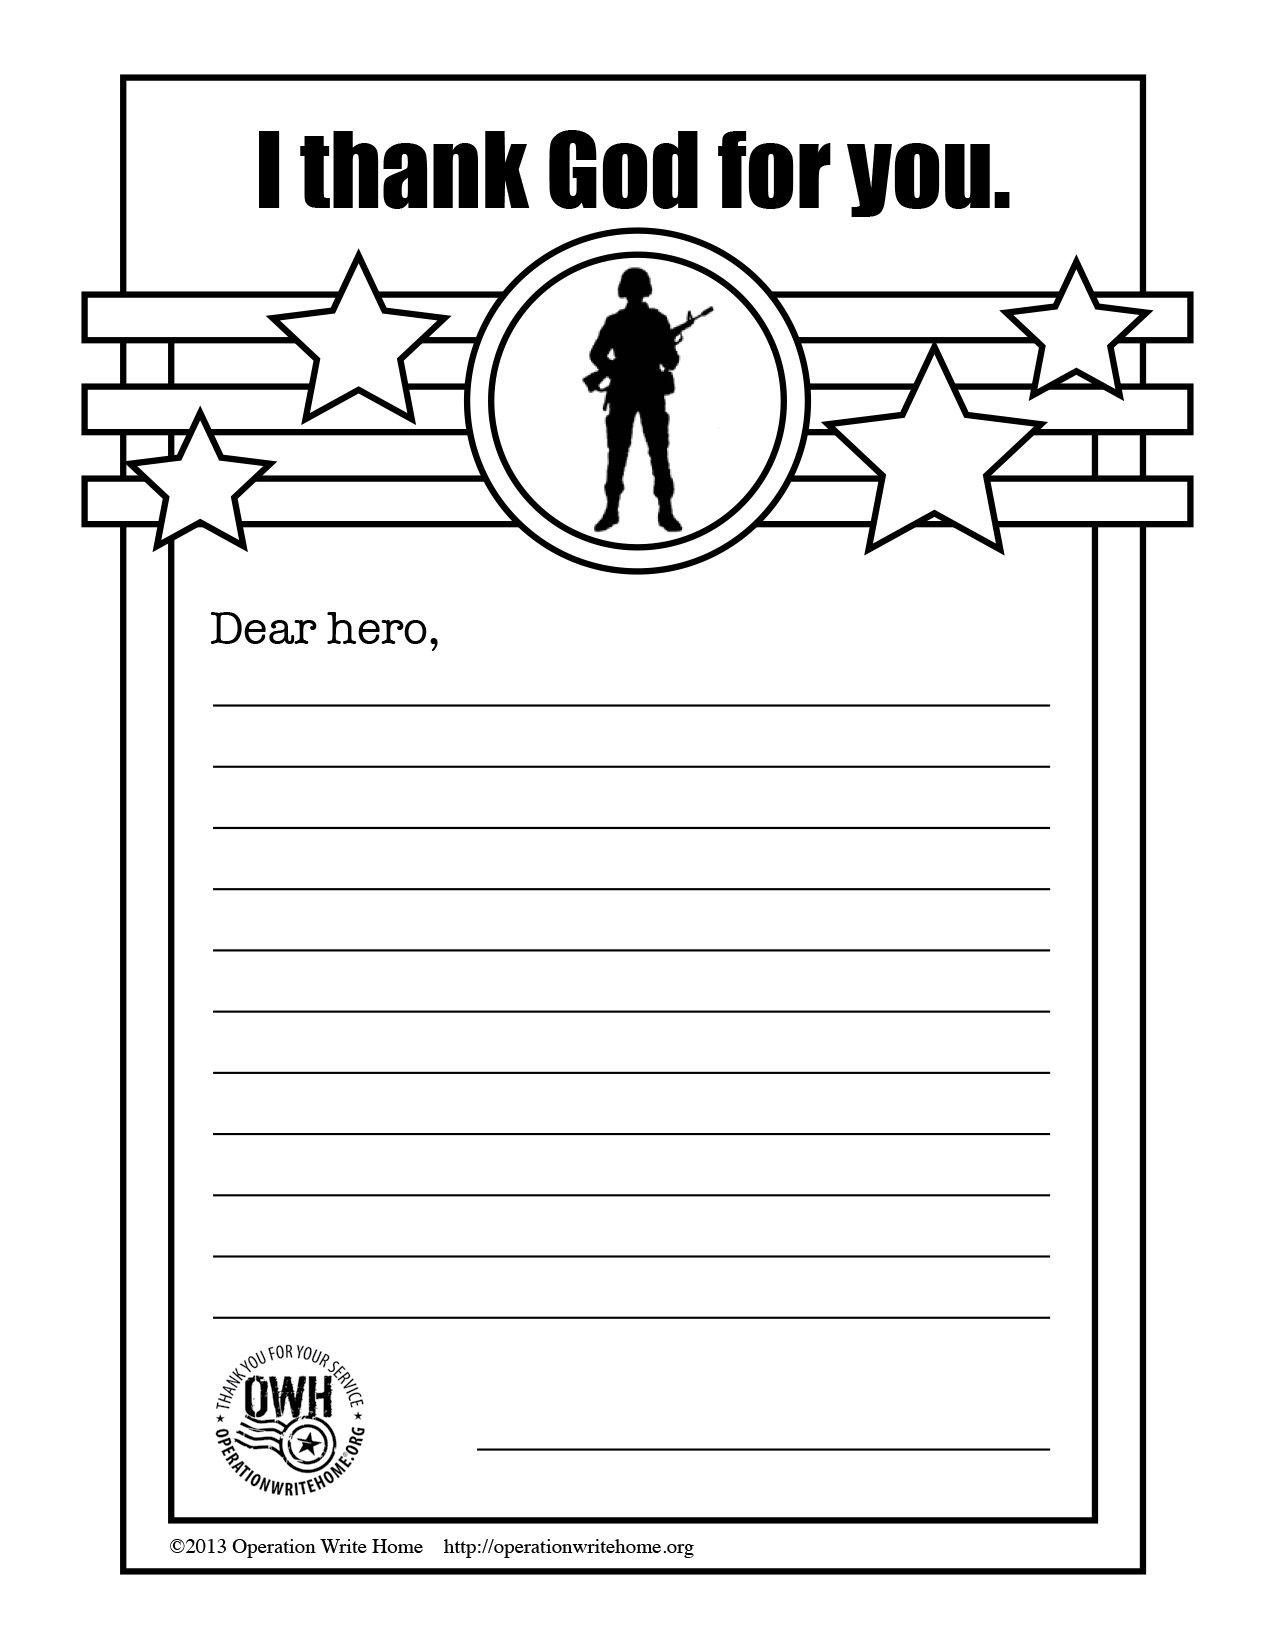 Coloring Pages Operation Write Home American Heritage Girls Military Cards Coloring Pages